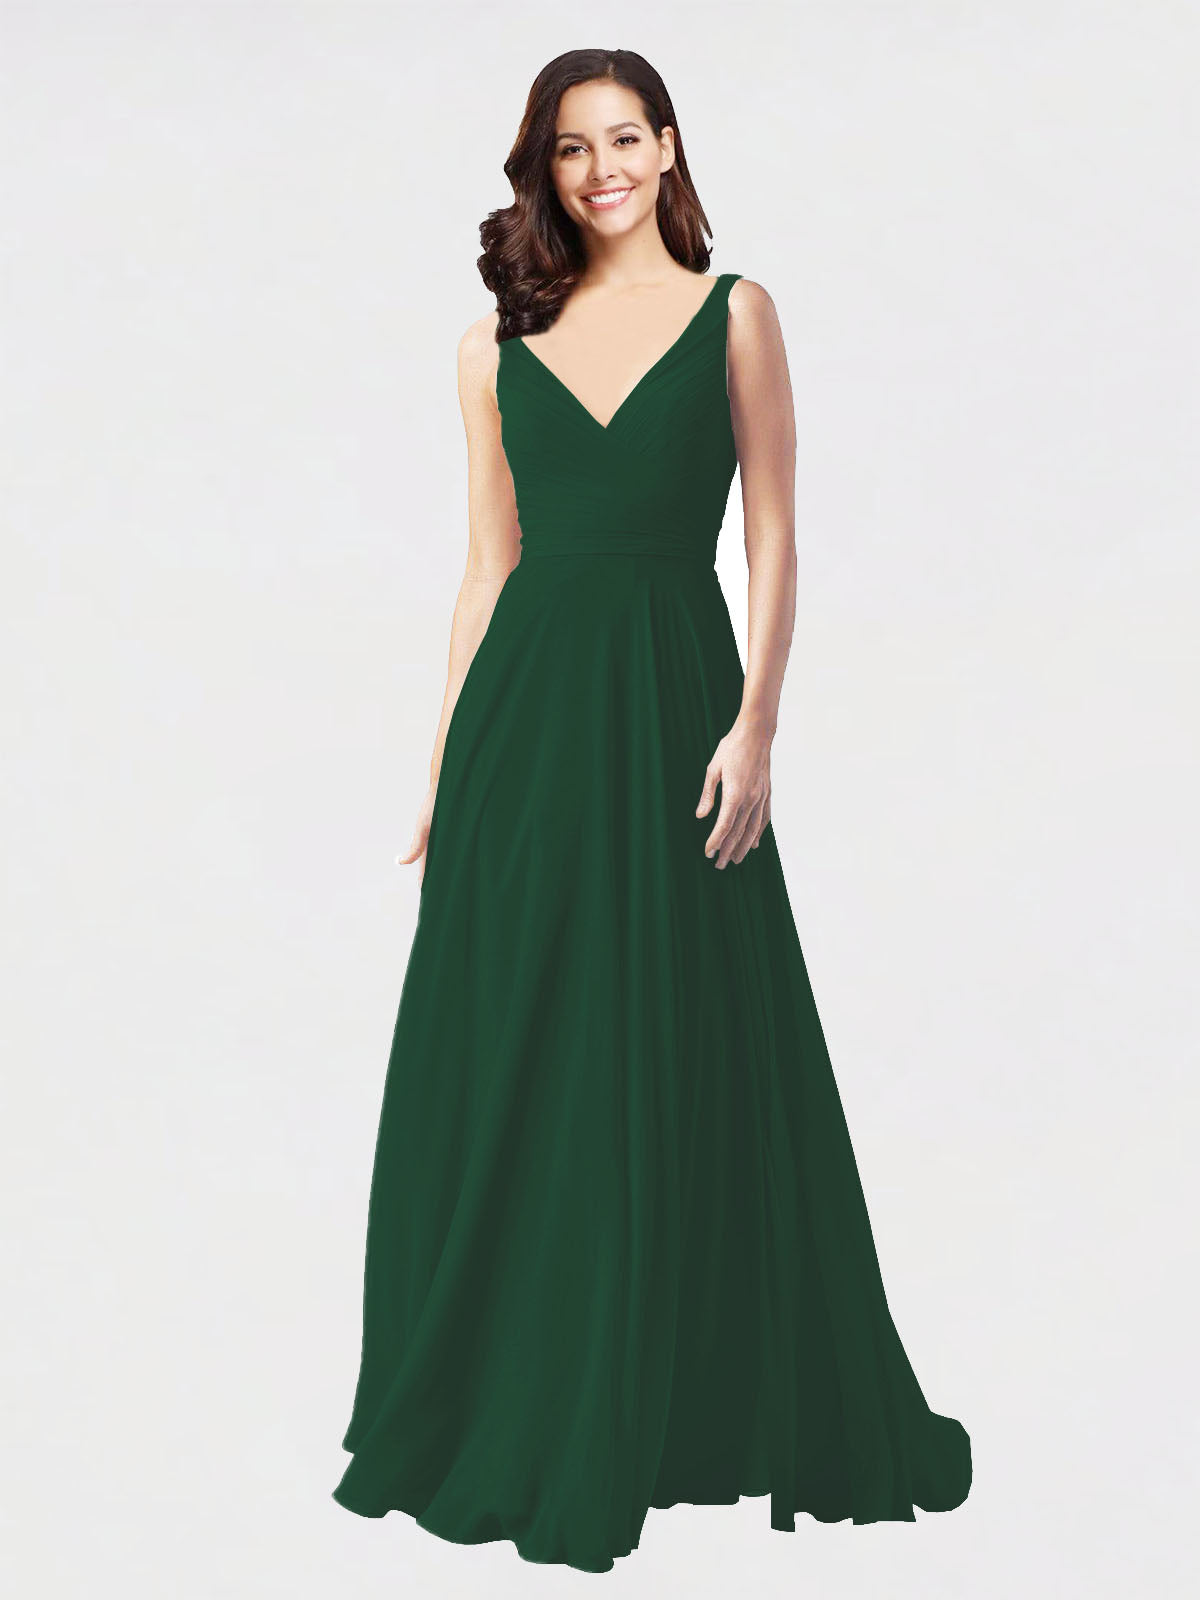 Long A-Line V-Neck Sleeveless Dark Green Chiffon Bridesmaid Dress Bernice